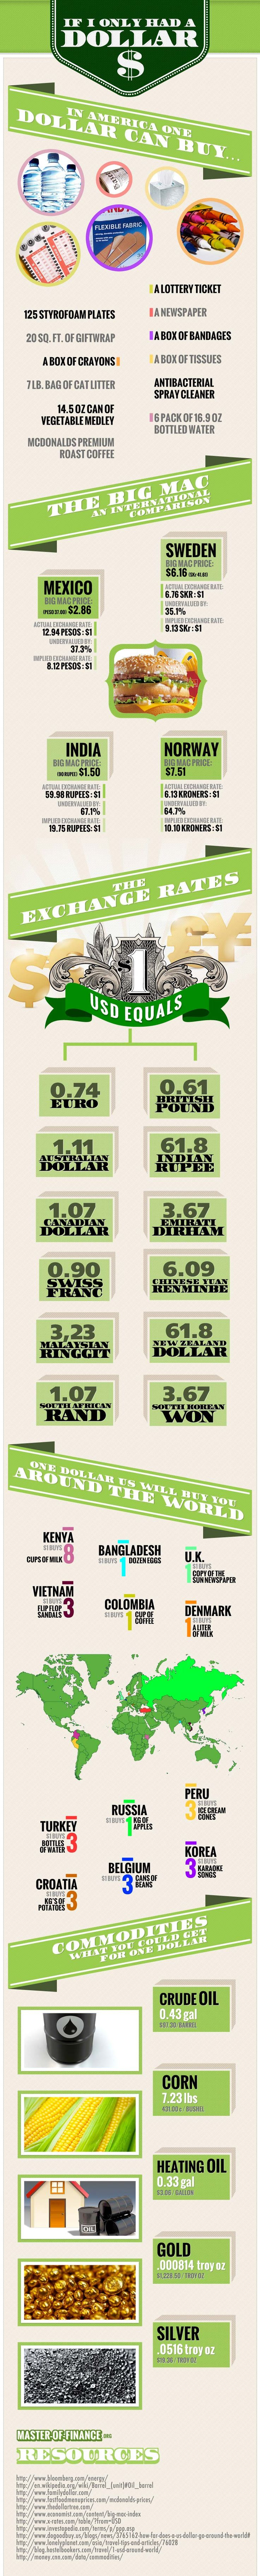 """What a Dollar Buys: Economist published """"The Big Mac Index"""" a lighthearted approach to analyzing the difference between actual prices and exchange rates. Starting from this, here are some updated stats on the cost of the Big Mac in different countries and, for comparison, what 1 US dollar can get you."""